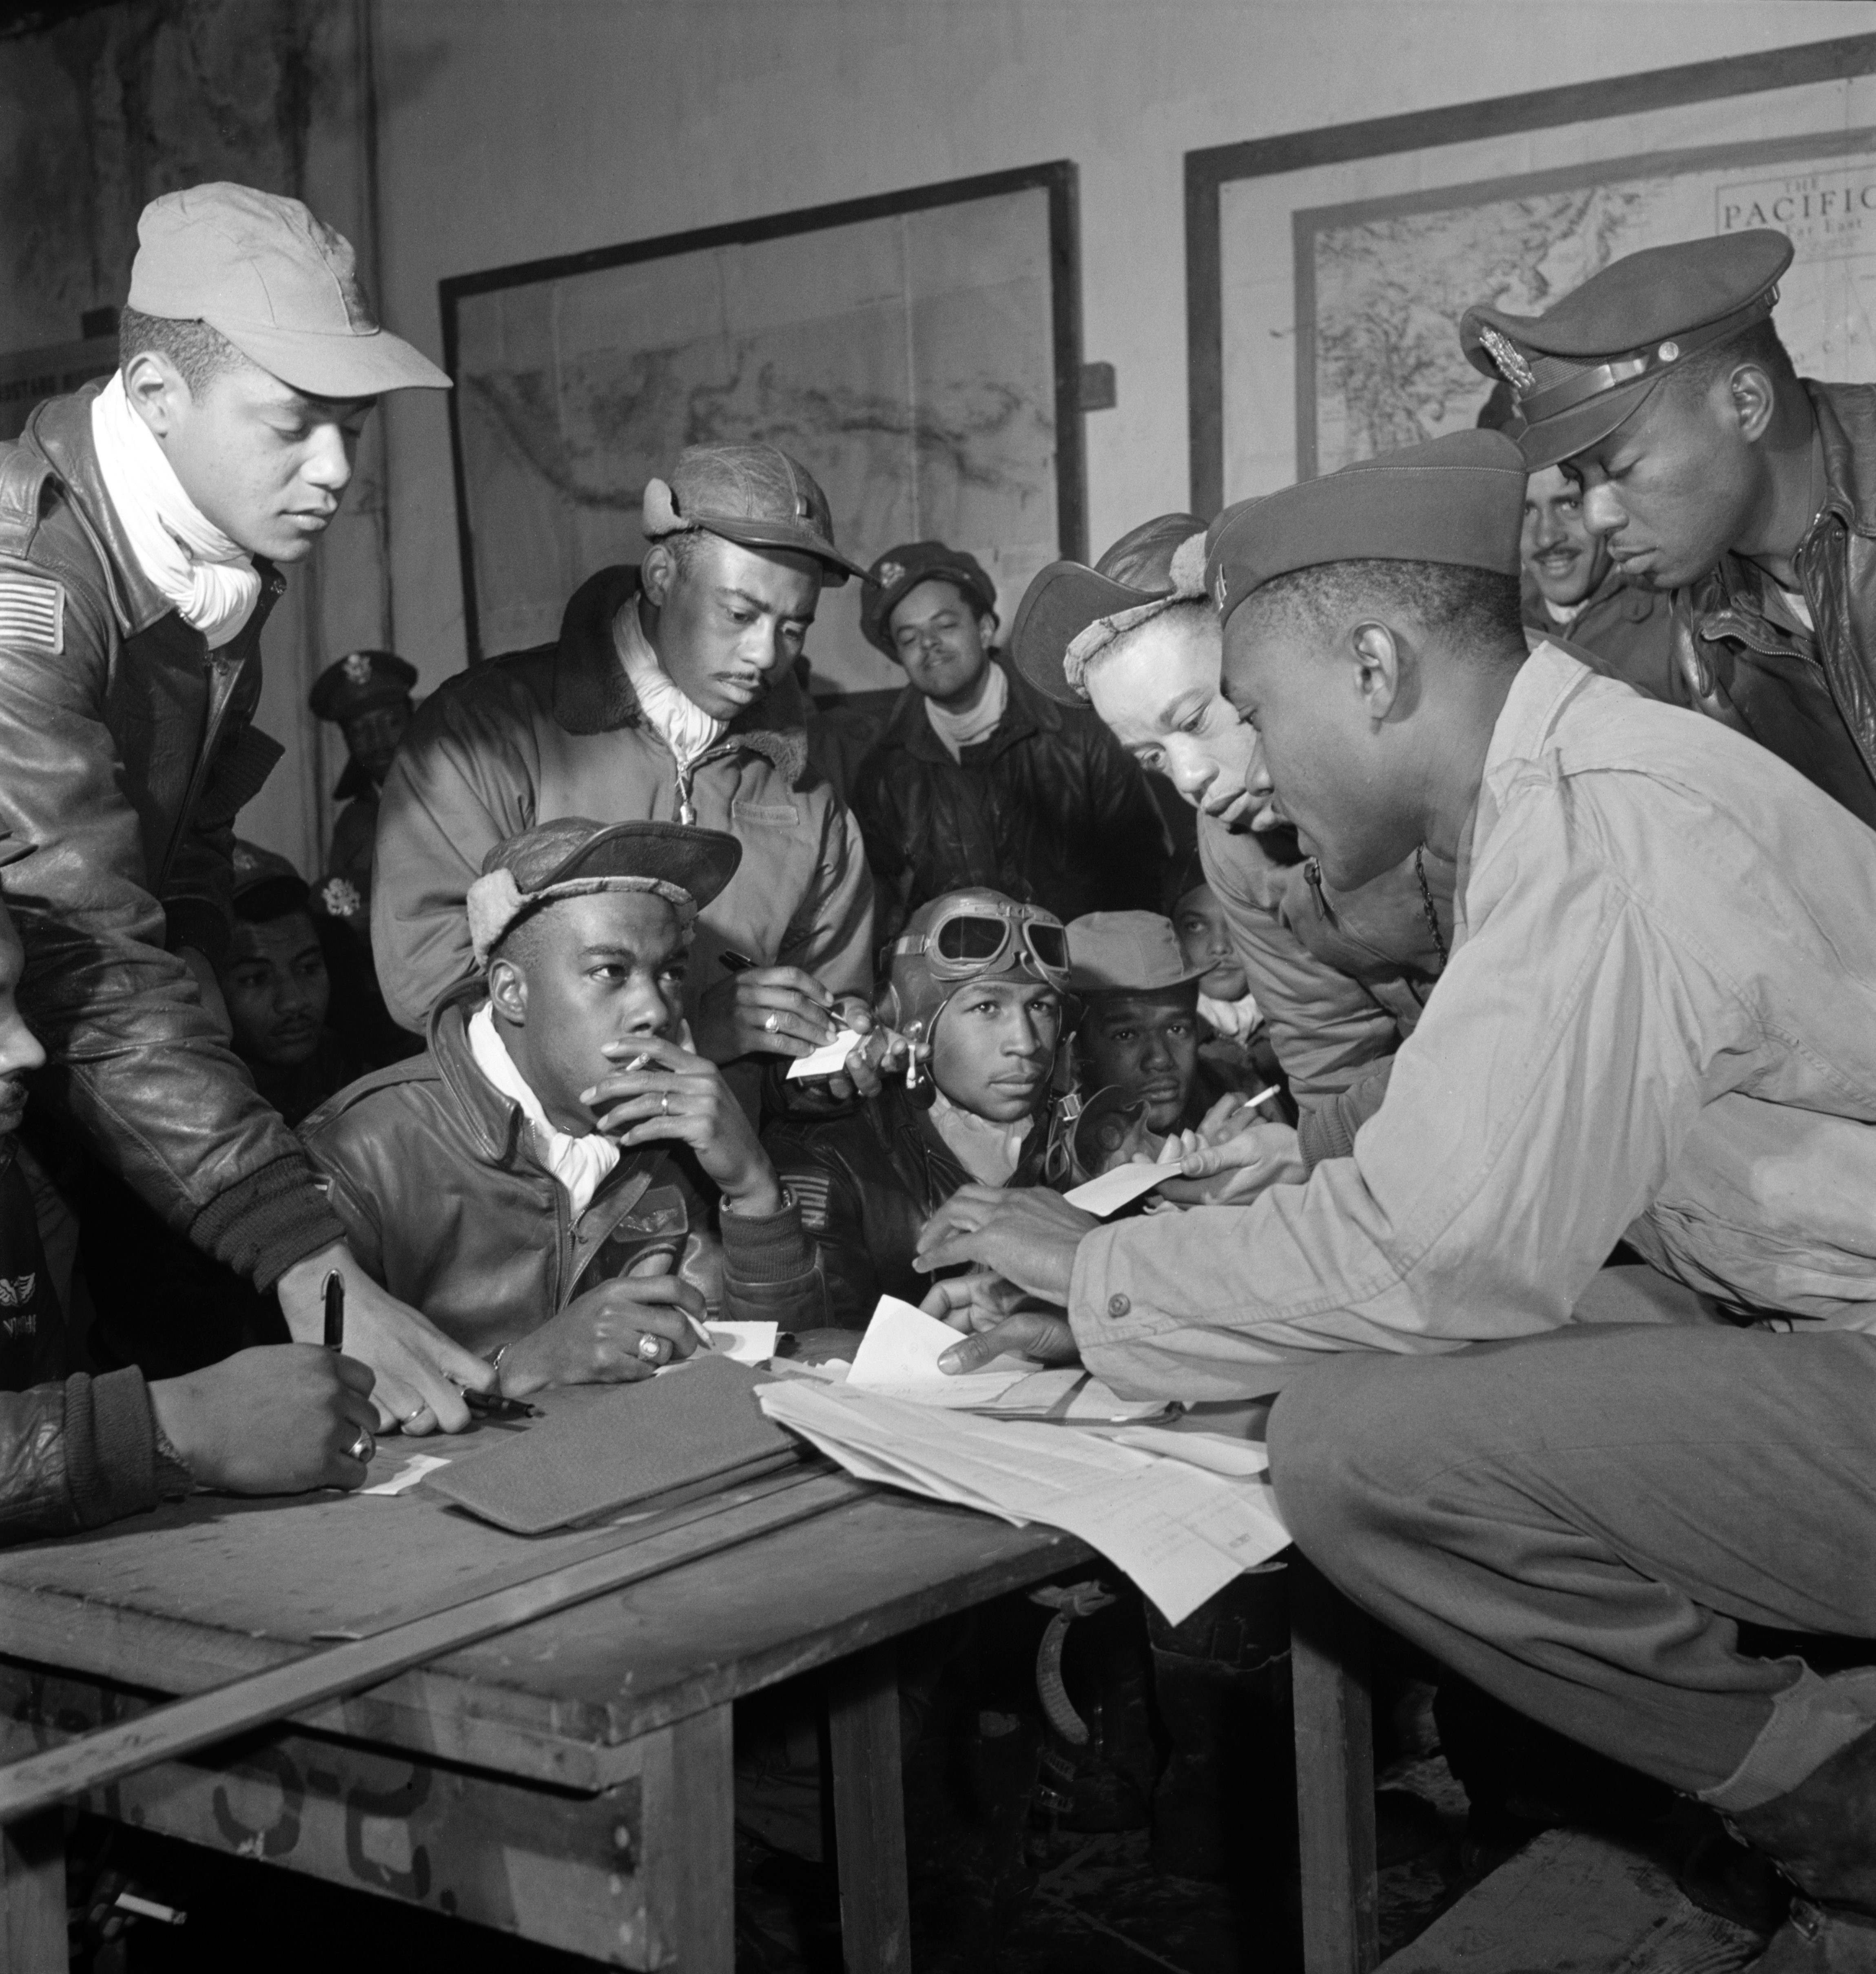 Tuskegee airmen 332nd fighter group public domain clip art for World class photos pictures